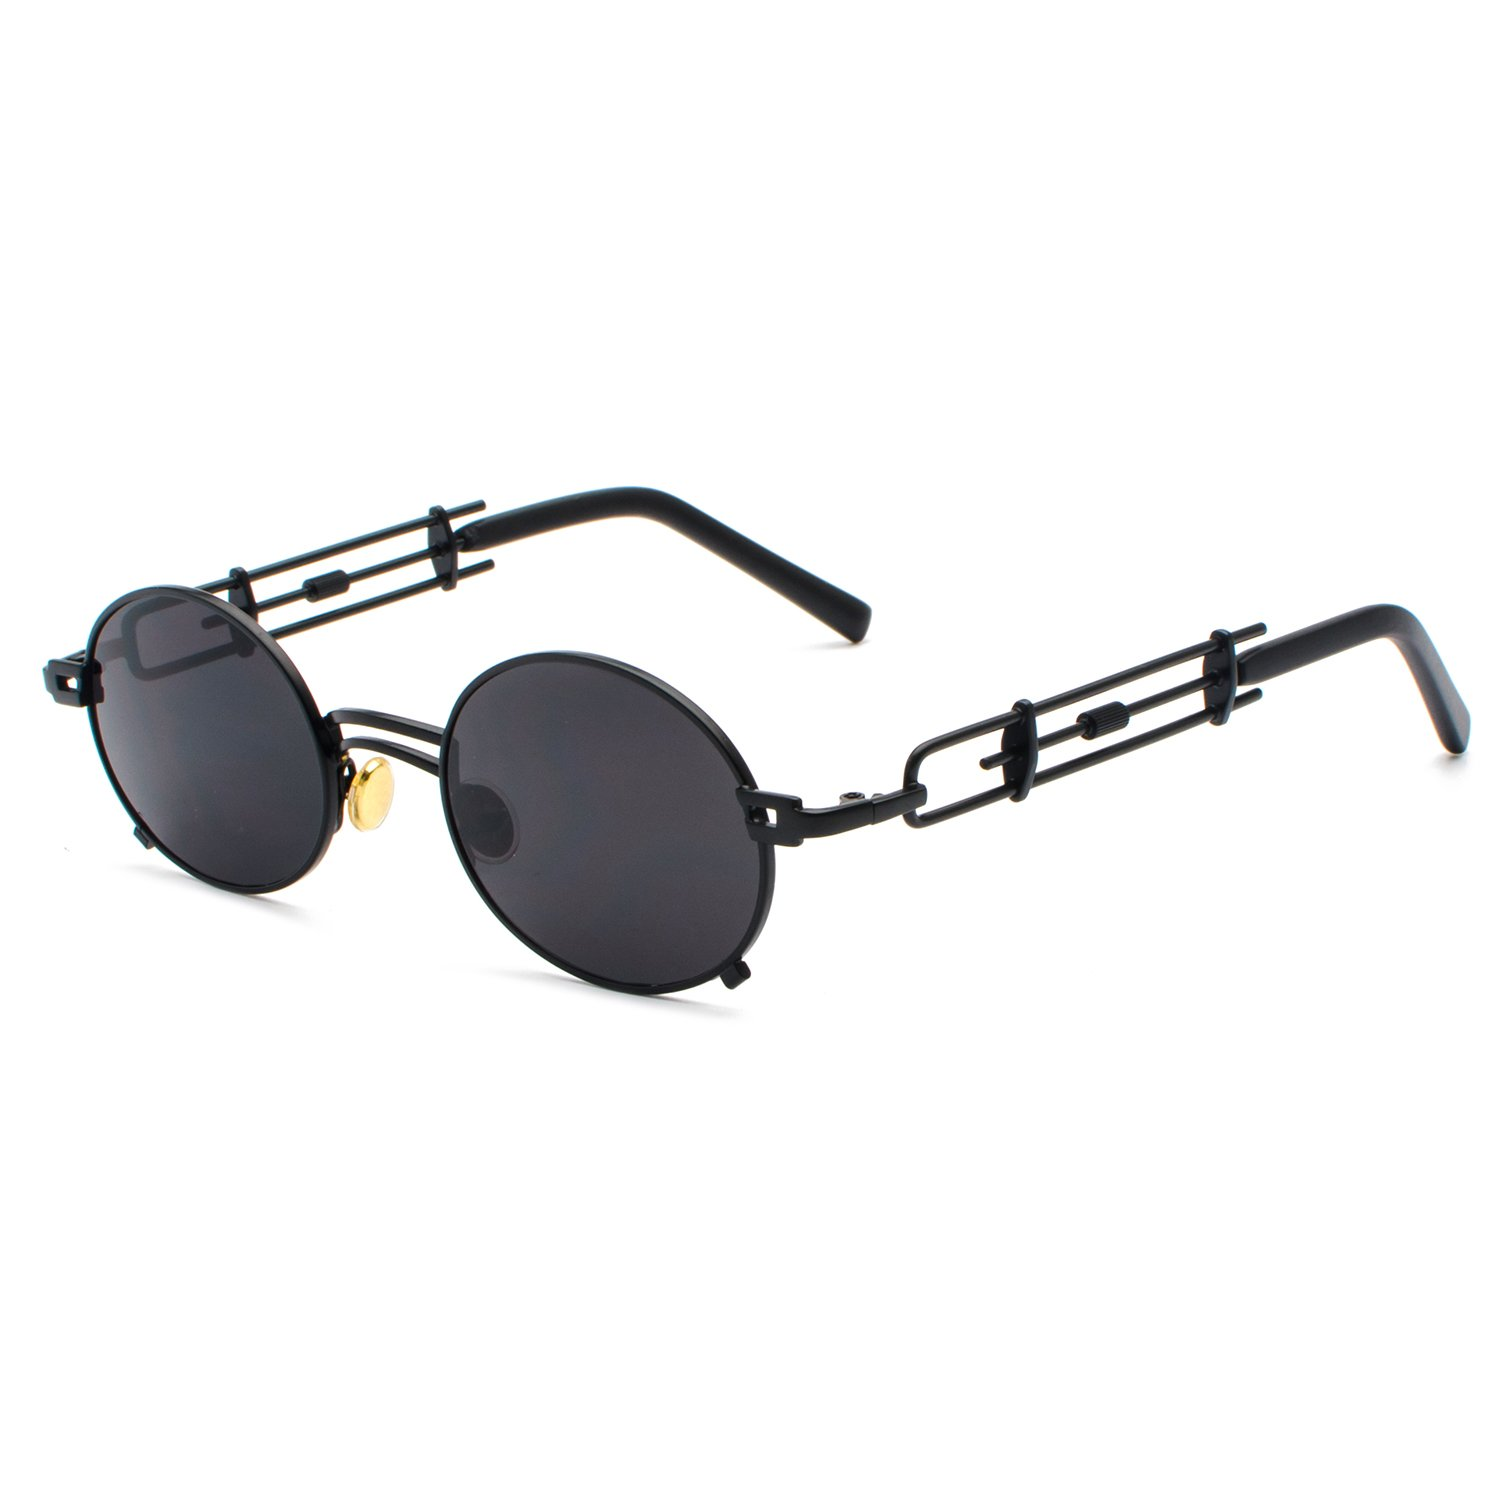 5507929e23 CVOO Gothic Men Steam Punk Sunglasses Women Metal Eyeglasses Sun Glasses  Mirror Male Eye Glasses Shades  Amazon.de  Bekleidung